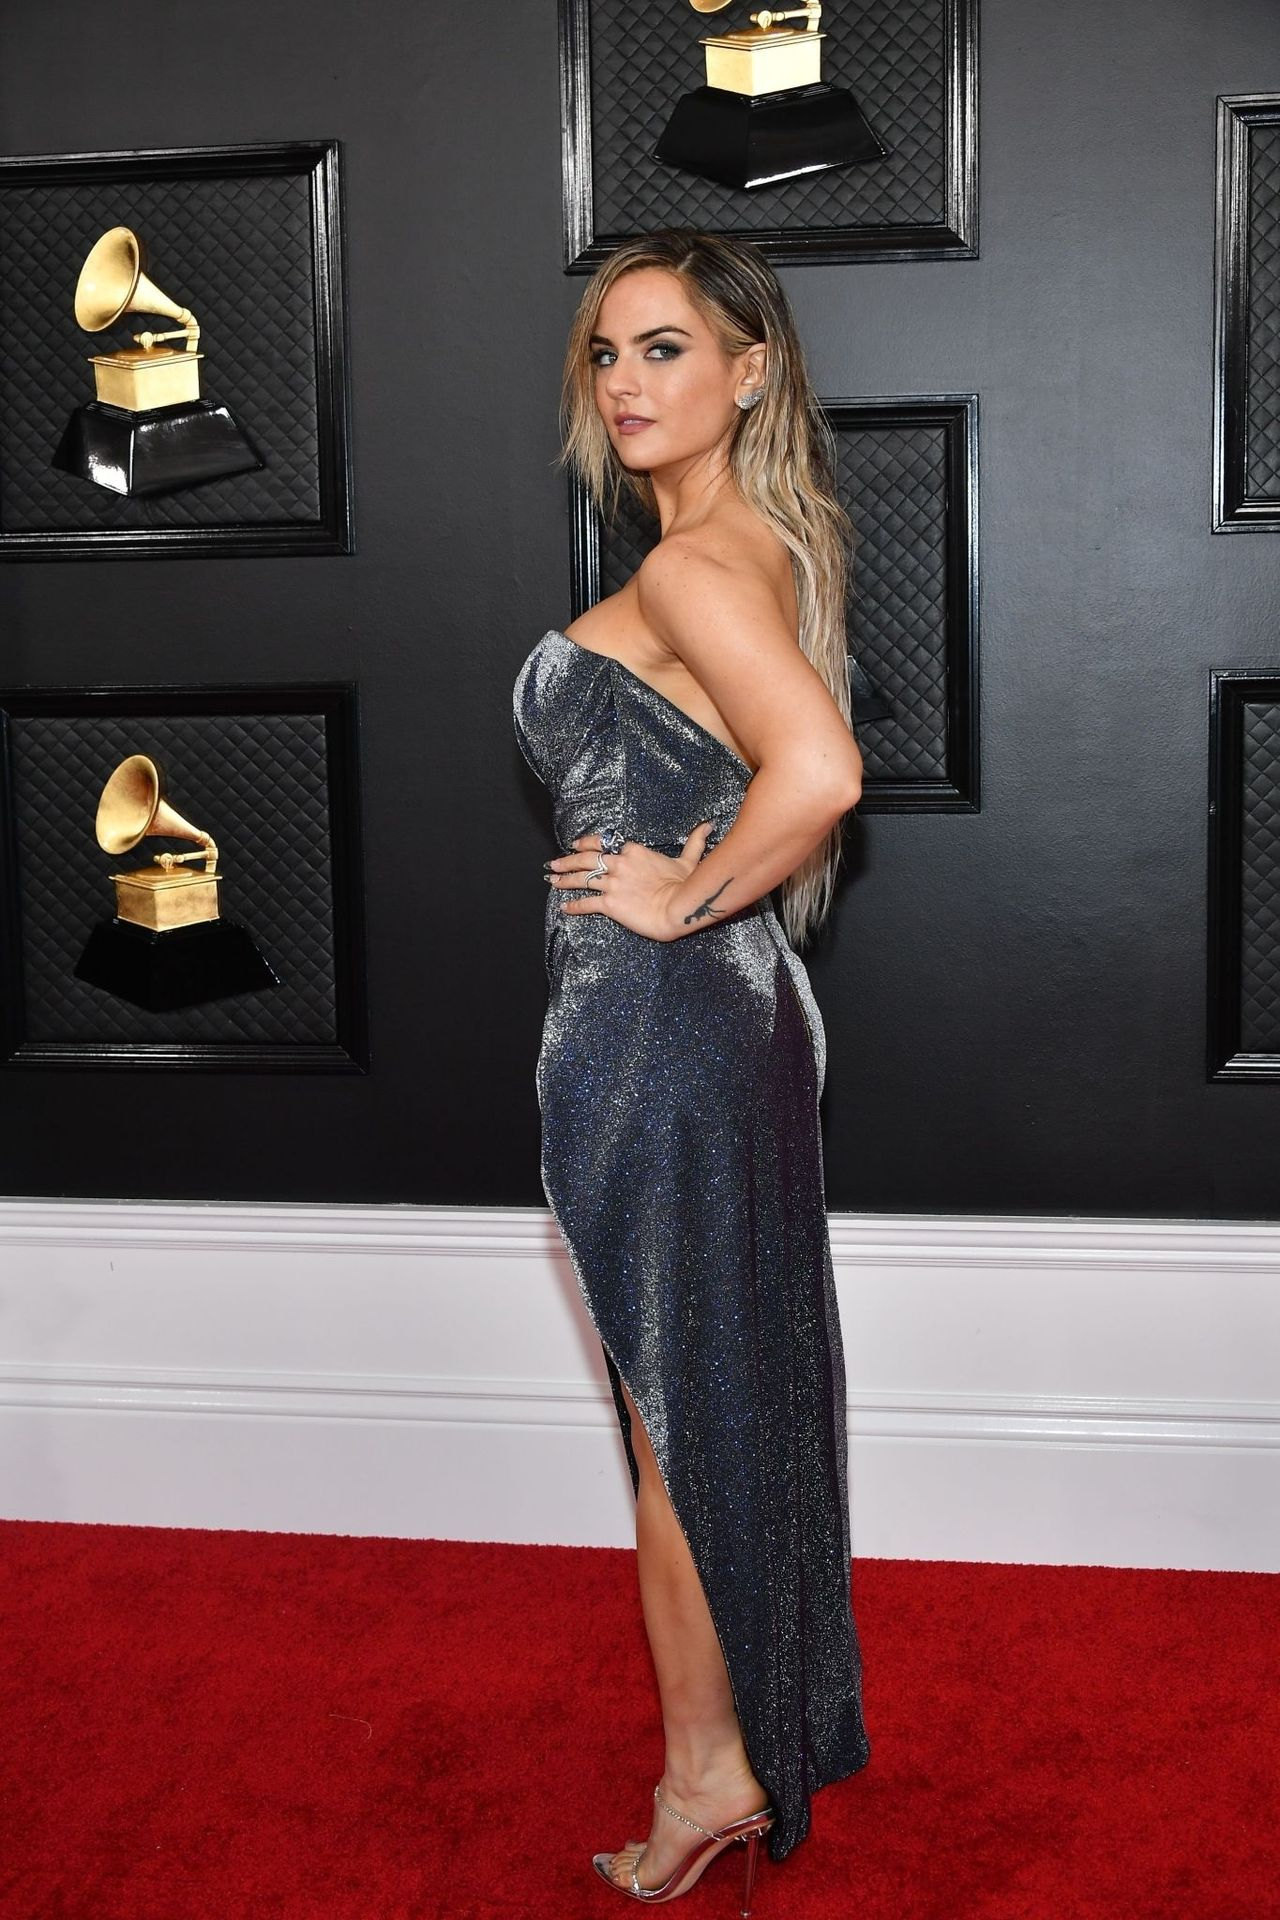 Jojo Shows Her Legs And Cleavage At The 62nd Annual Grammy Awards 0015